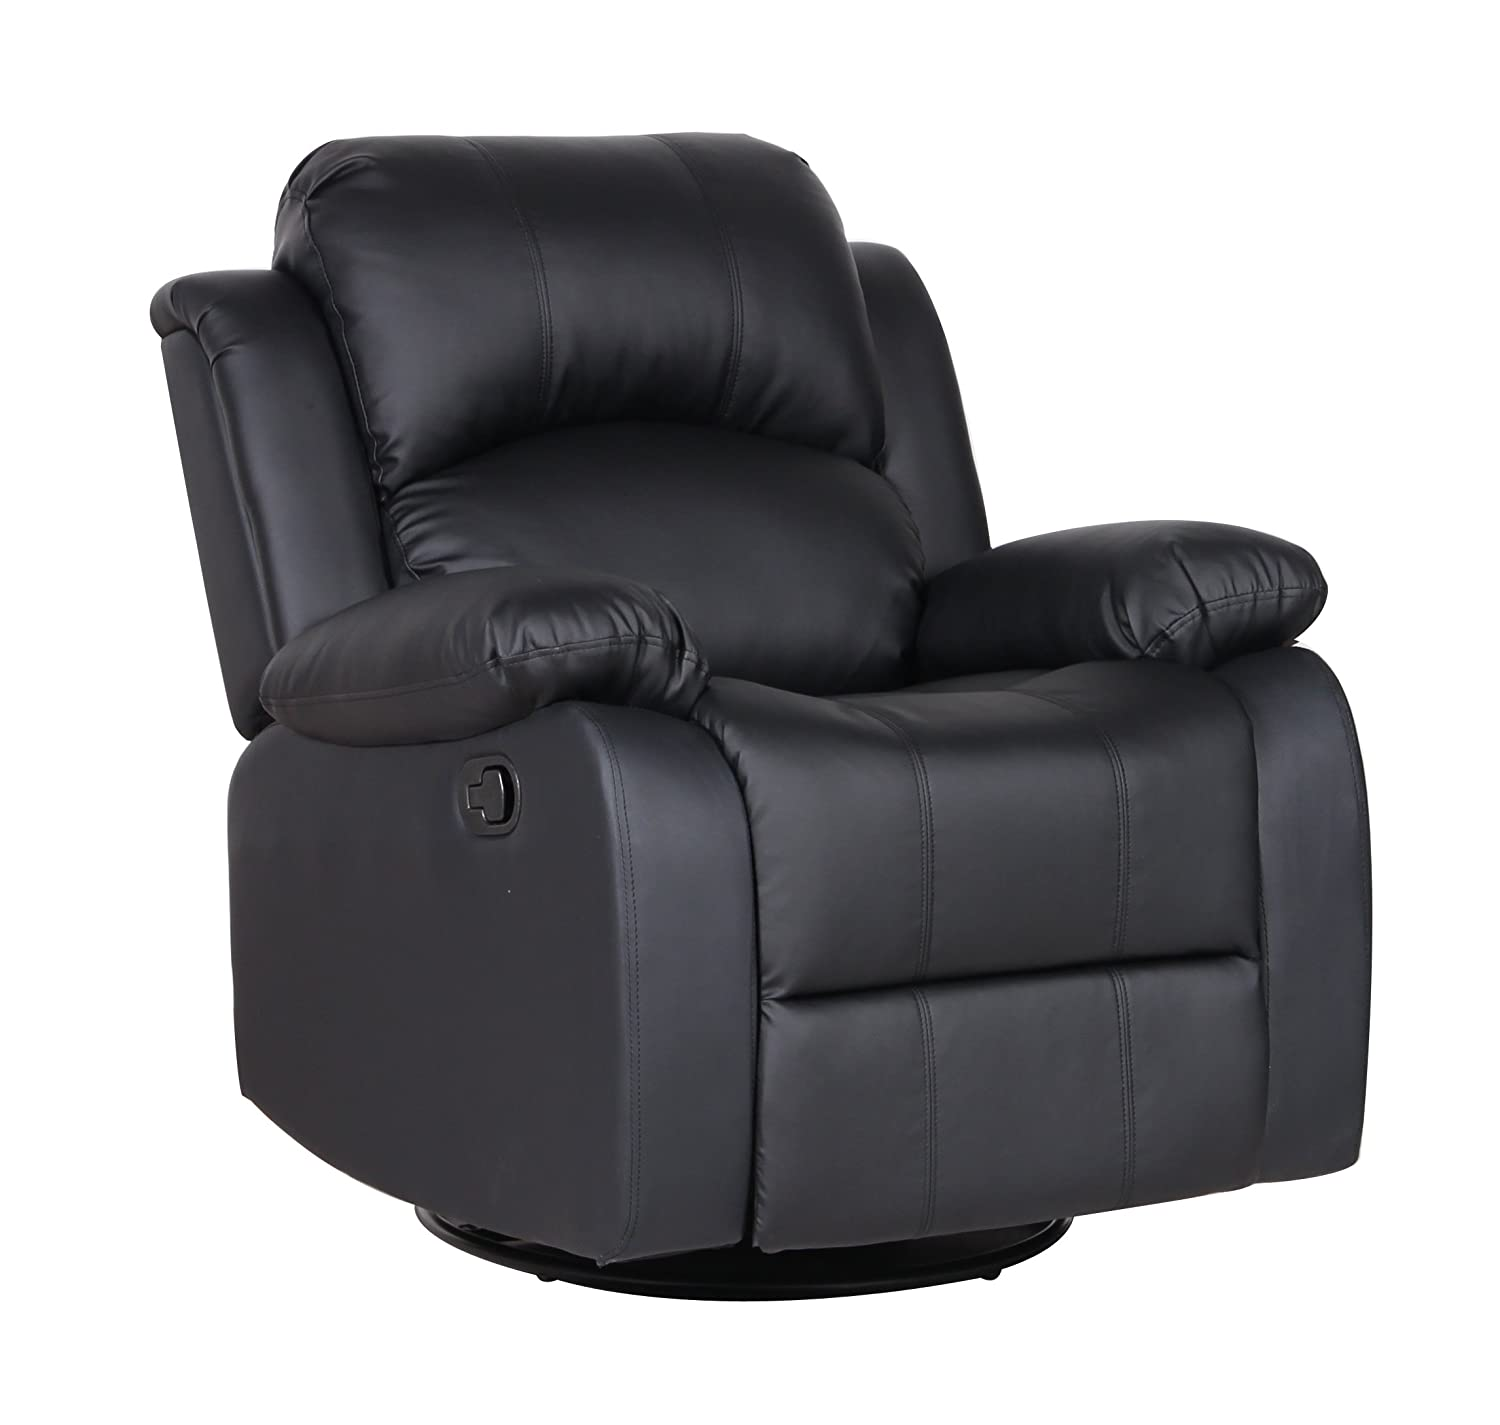 swivel recliner chairs best swivel recliner chairs swivel recliner chair best swivel recliner  sc 1 st  Comfortable recliner.com & best swivel recliner chairs Archives - Comfortable recliner.com islam-shia.org